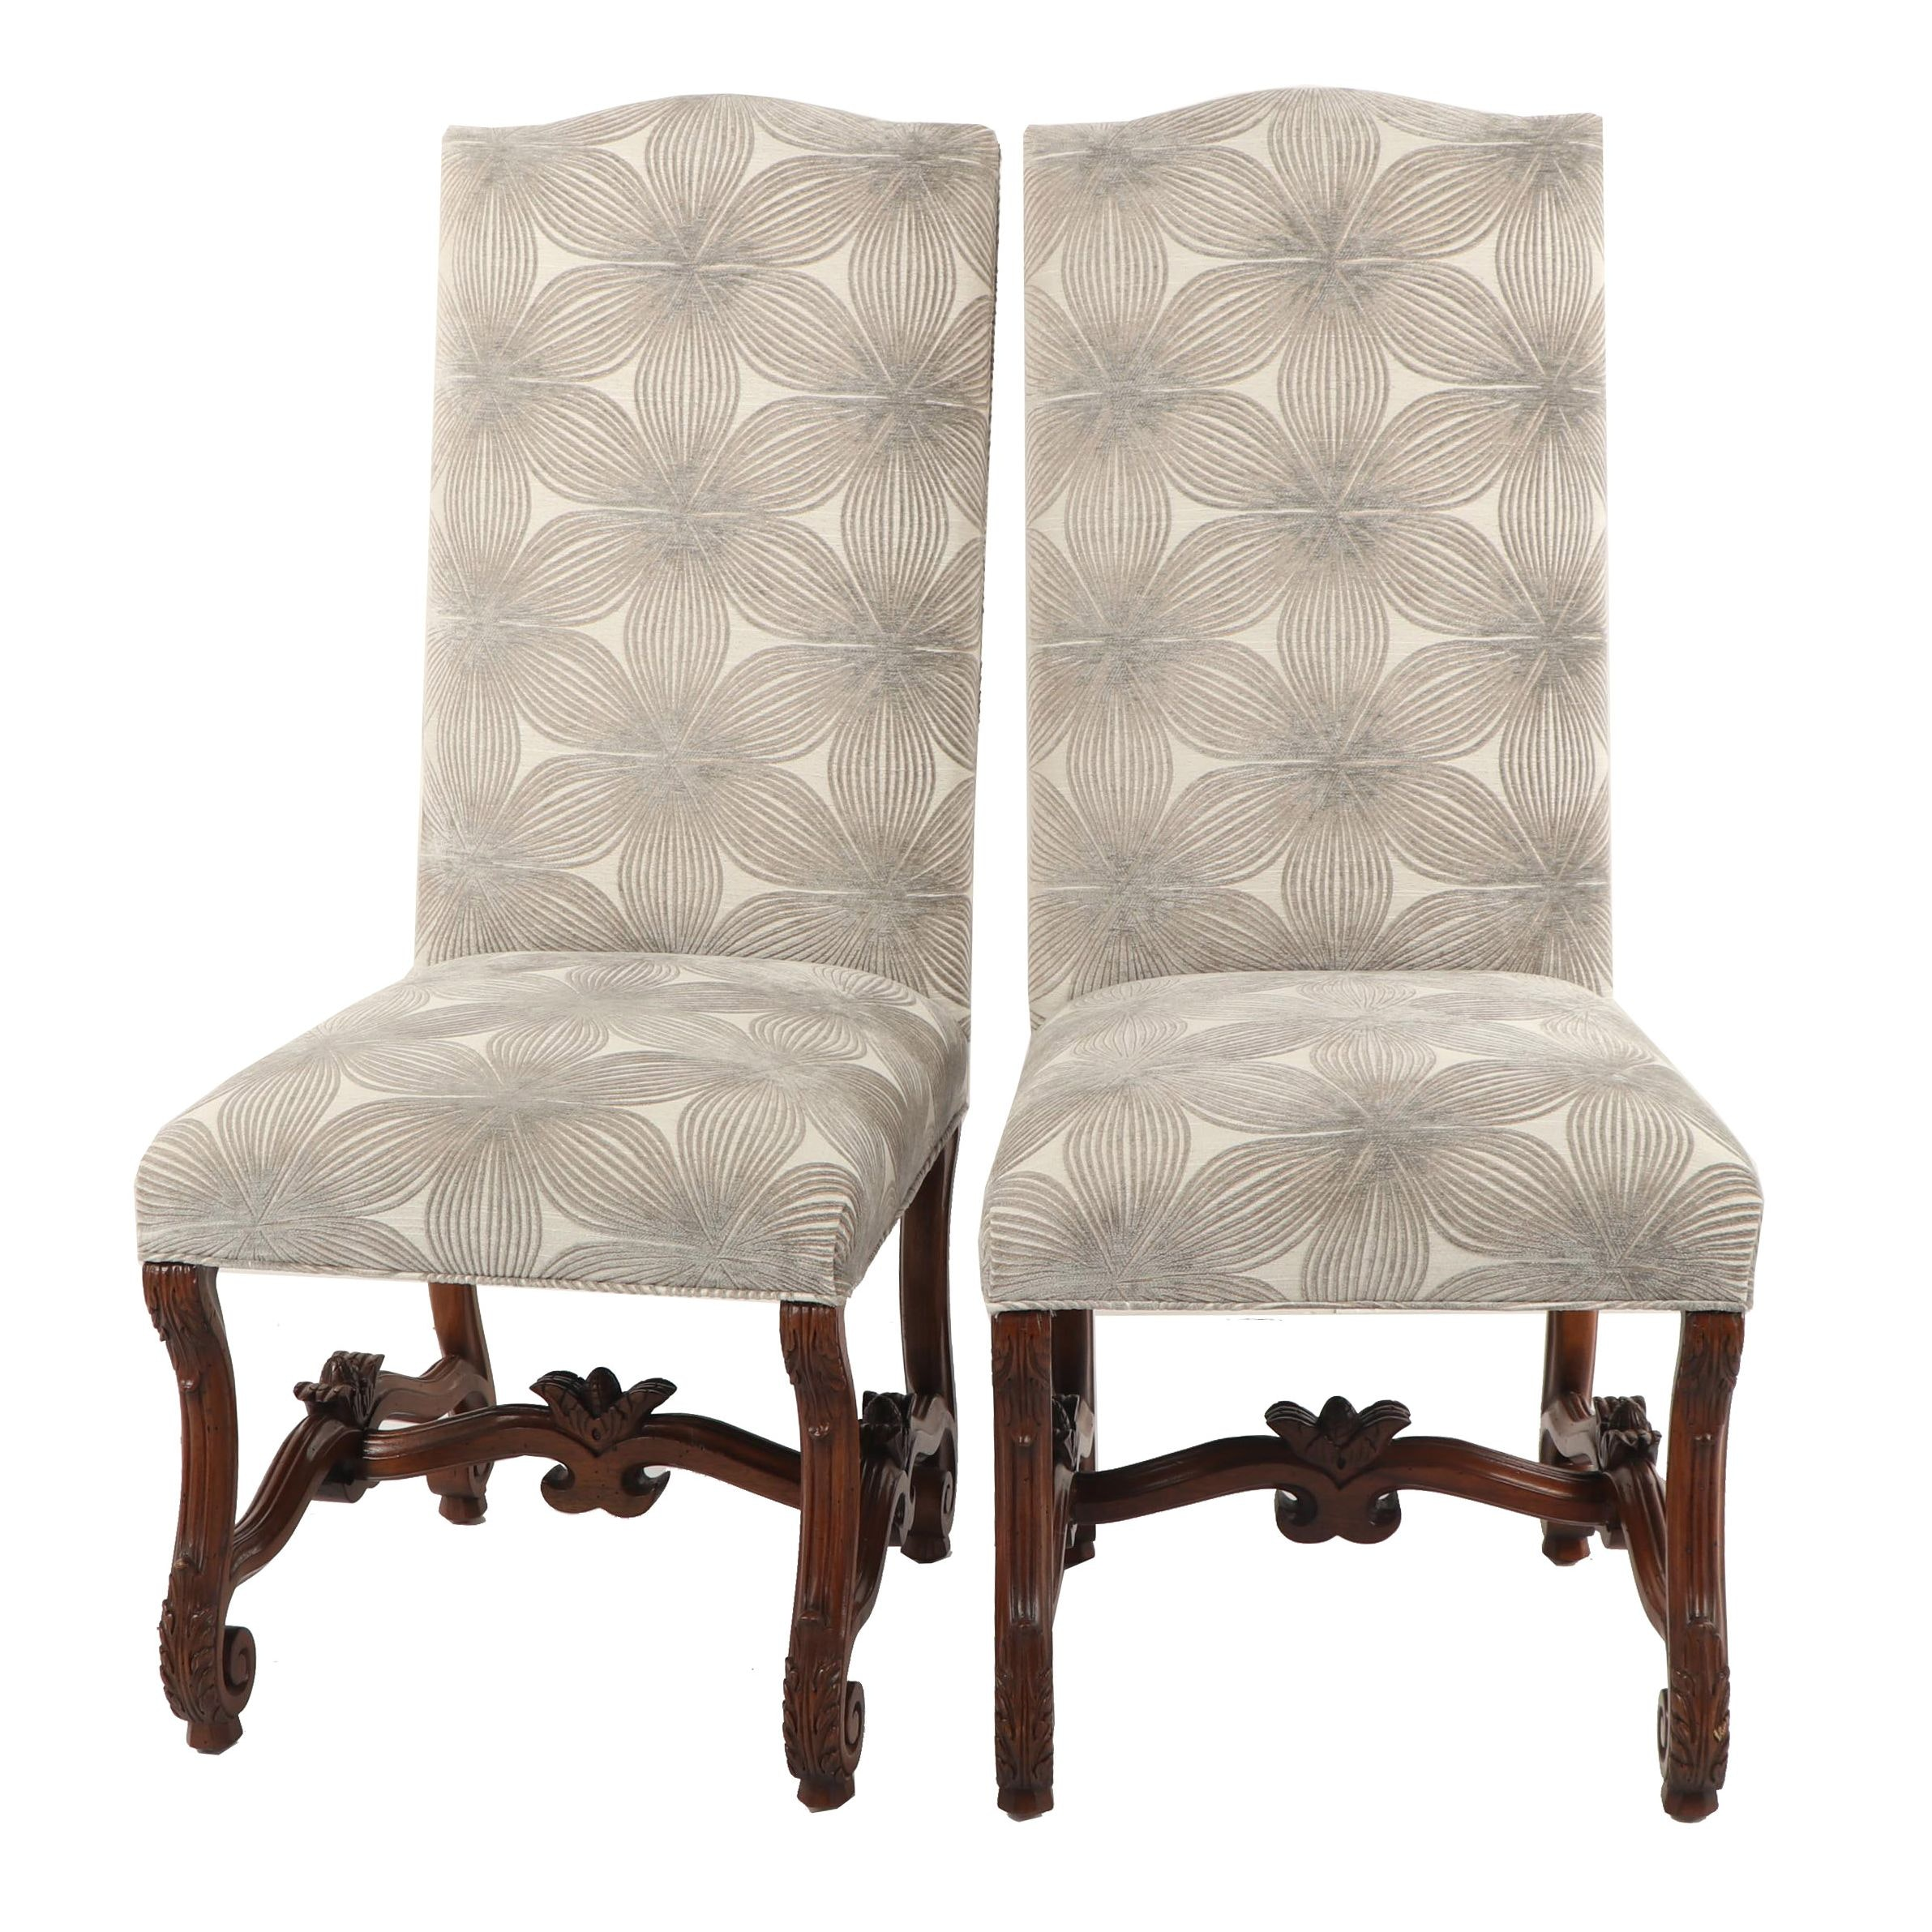 Louis XIII Style Grey Floral Upholstered Dining Chairs